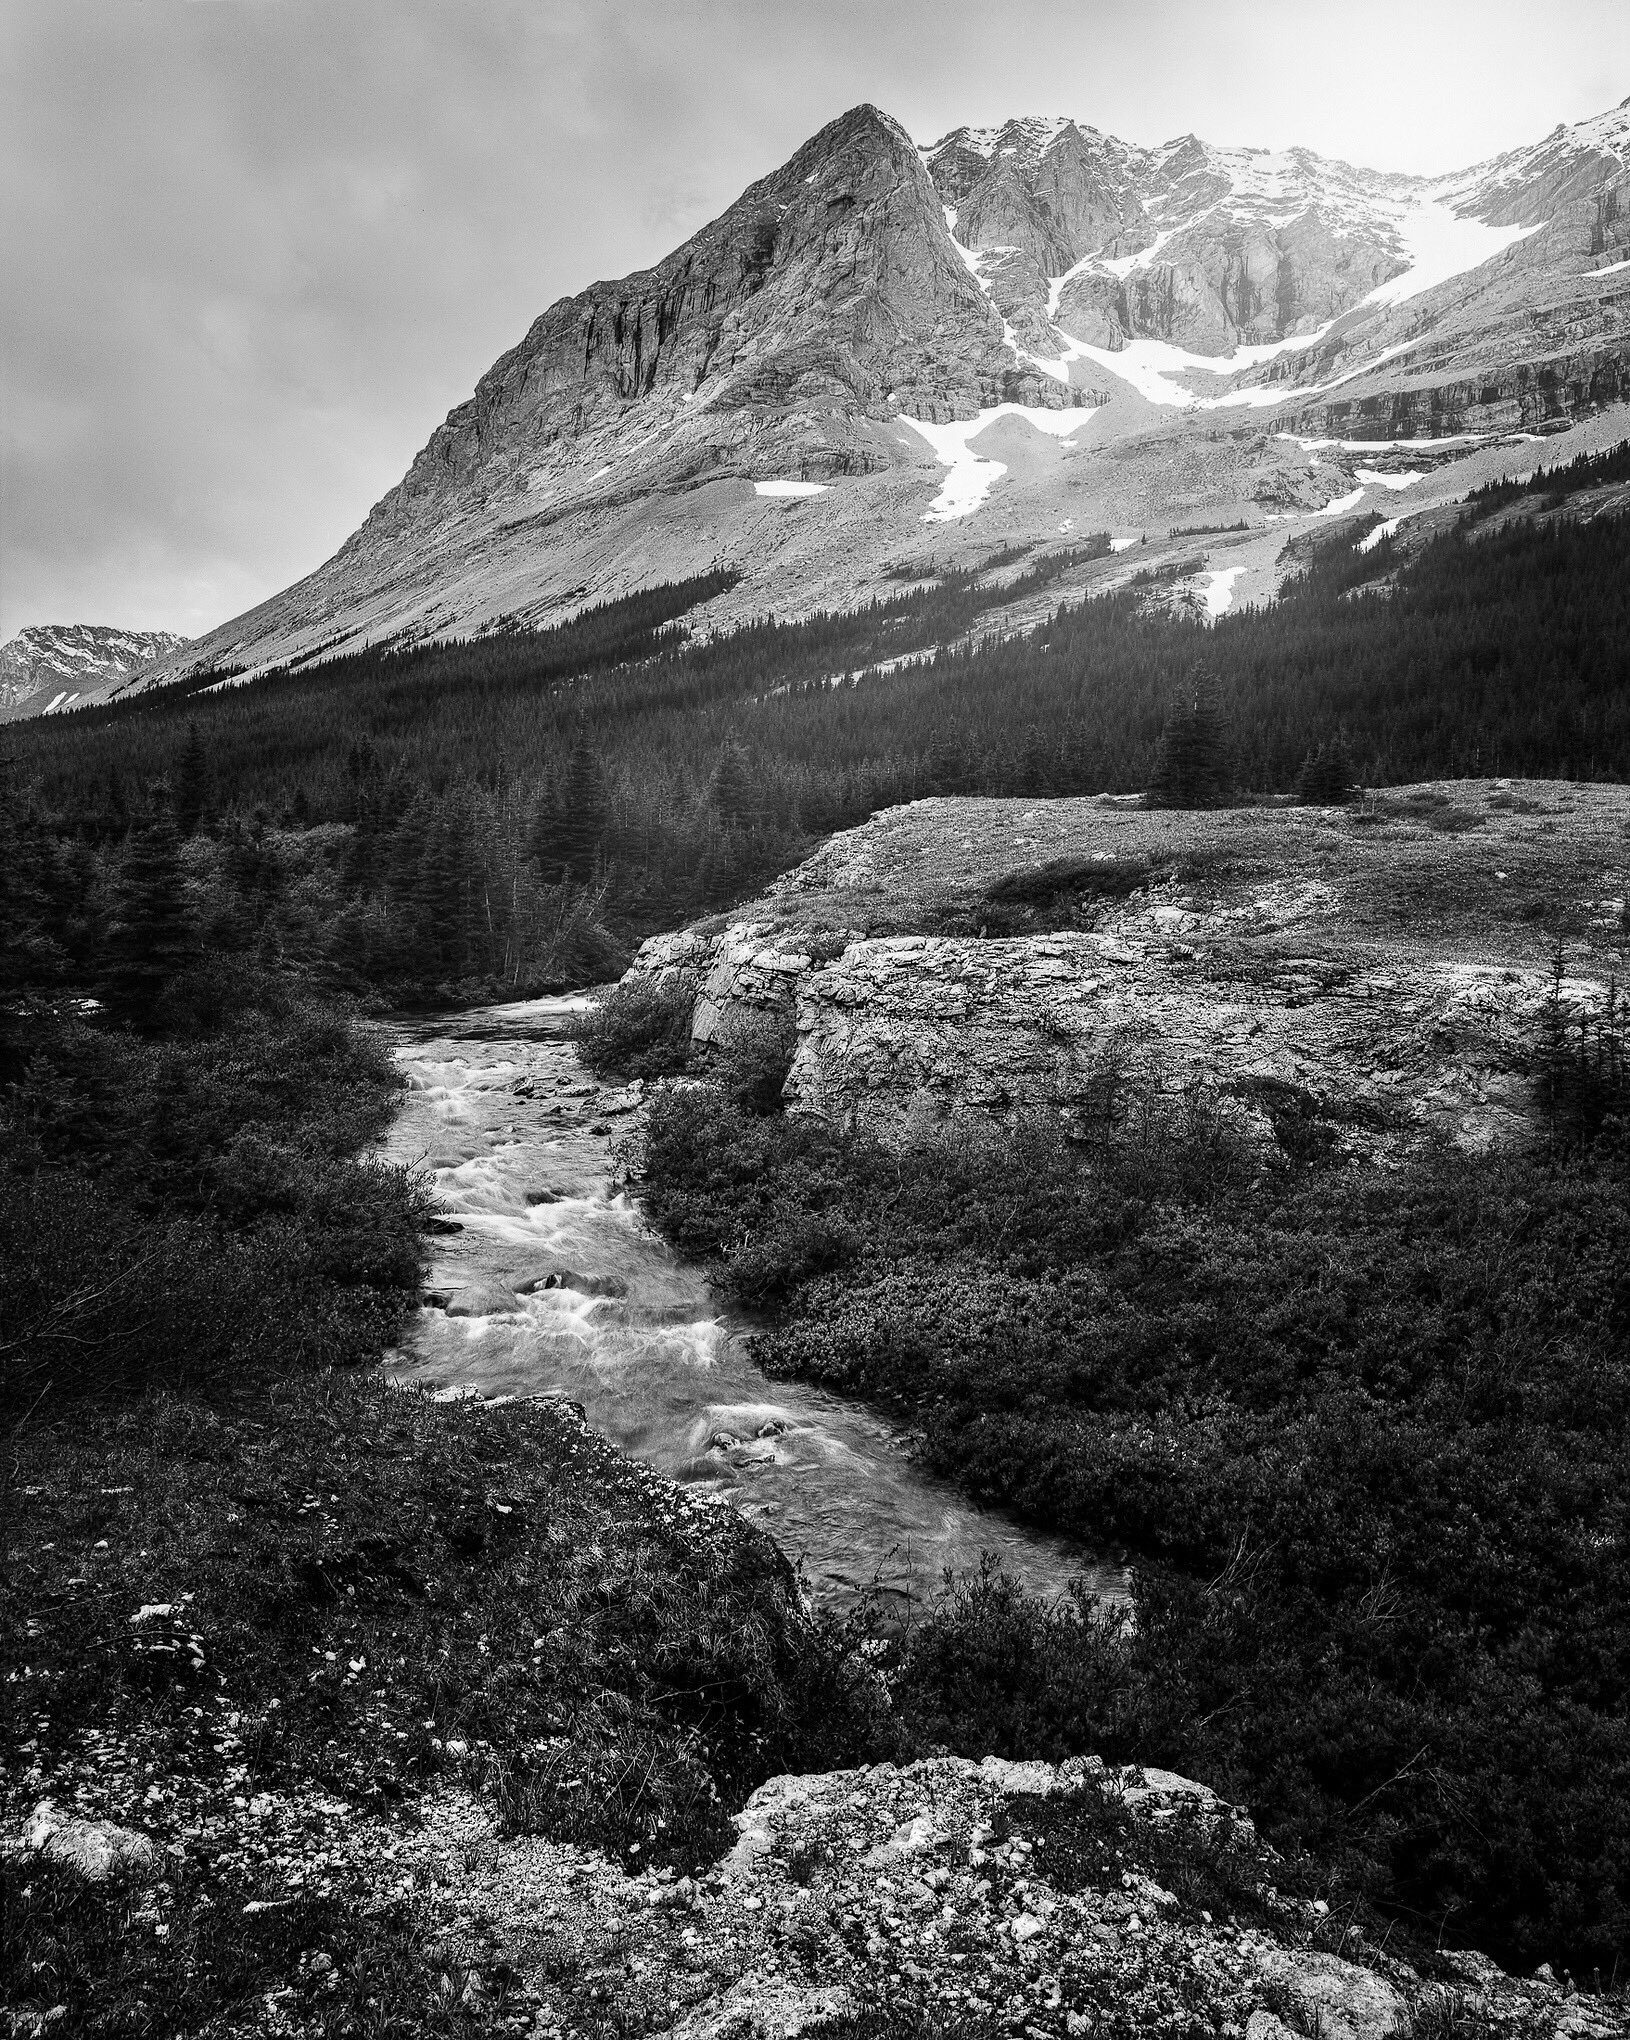 @JeremyCalow · Jan 13 Looking back at my year on @ILFORDPhoto , I'd have to say this was one of my favourite images taken way back in July of 2020! #fridayfavourites #ilfordphoto #bestof2020 #believeinfilm Elbow Valley Terminus Chamonix 45f2 / FP4/ Nikkor 90mm Developed in ID-11 1+1